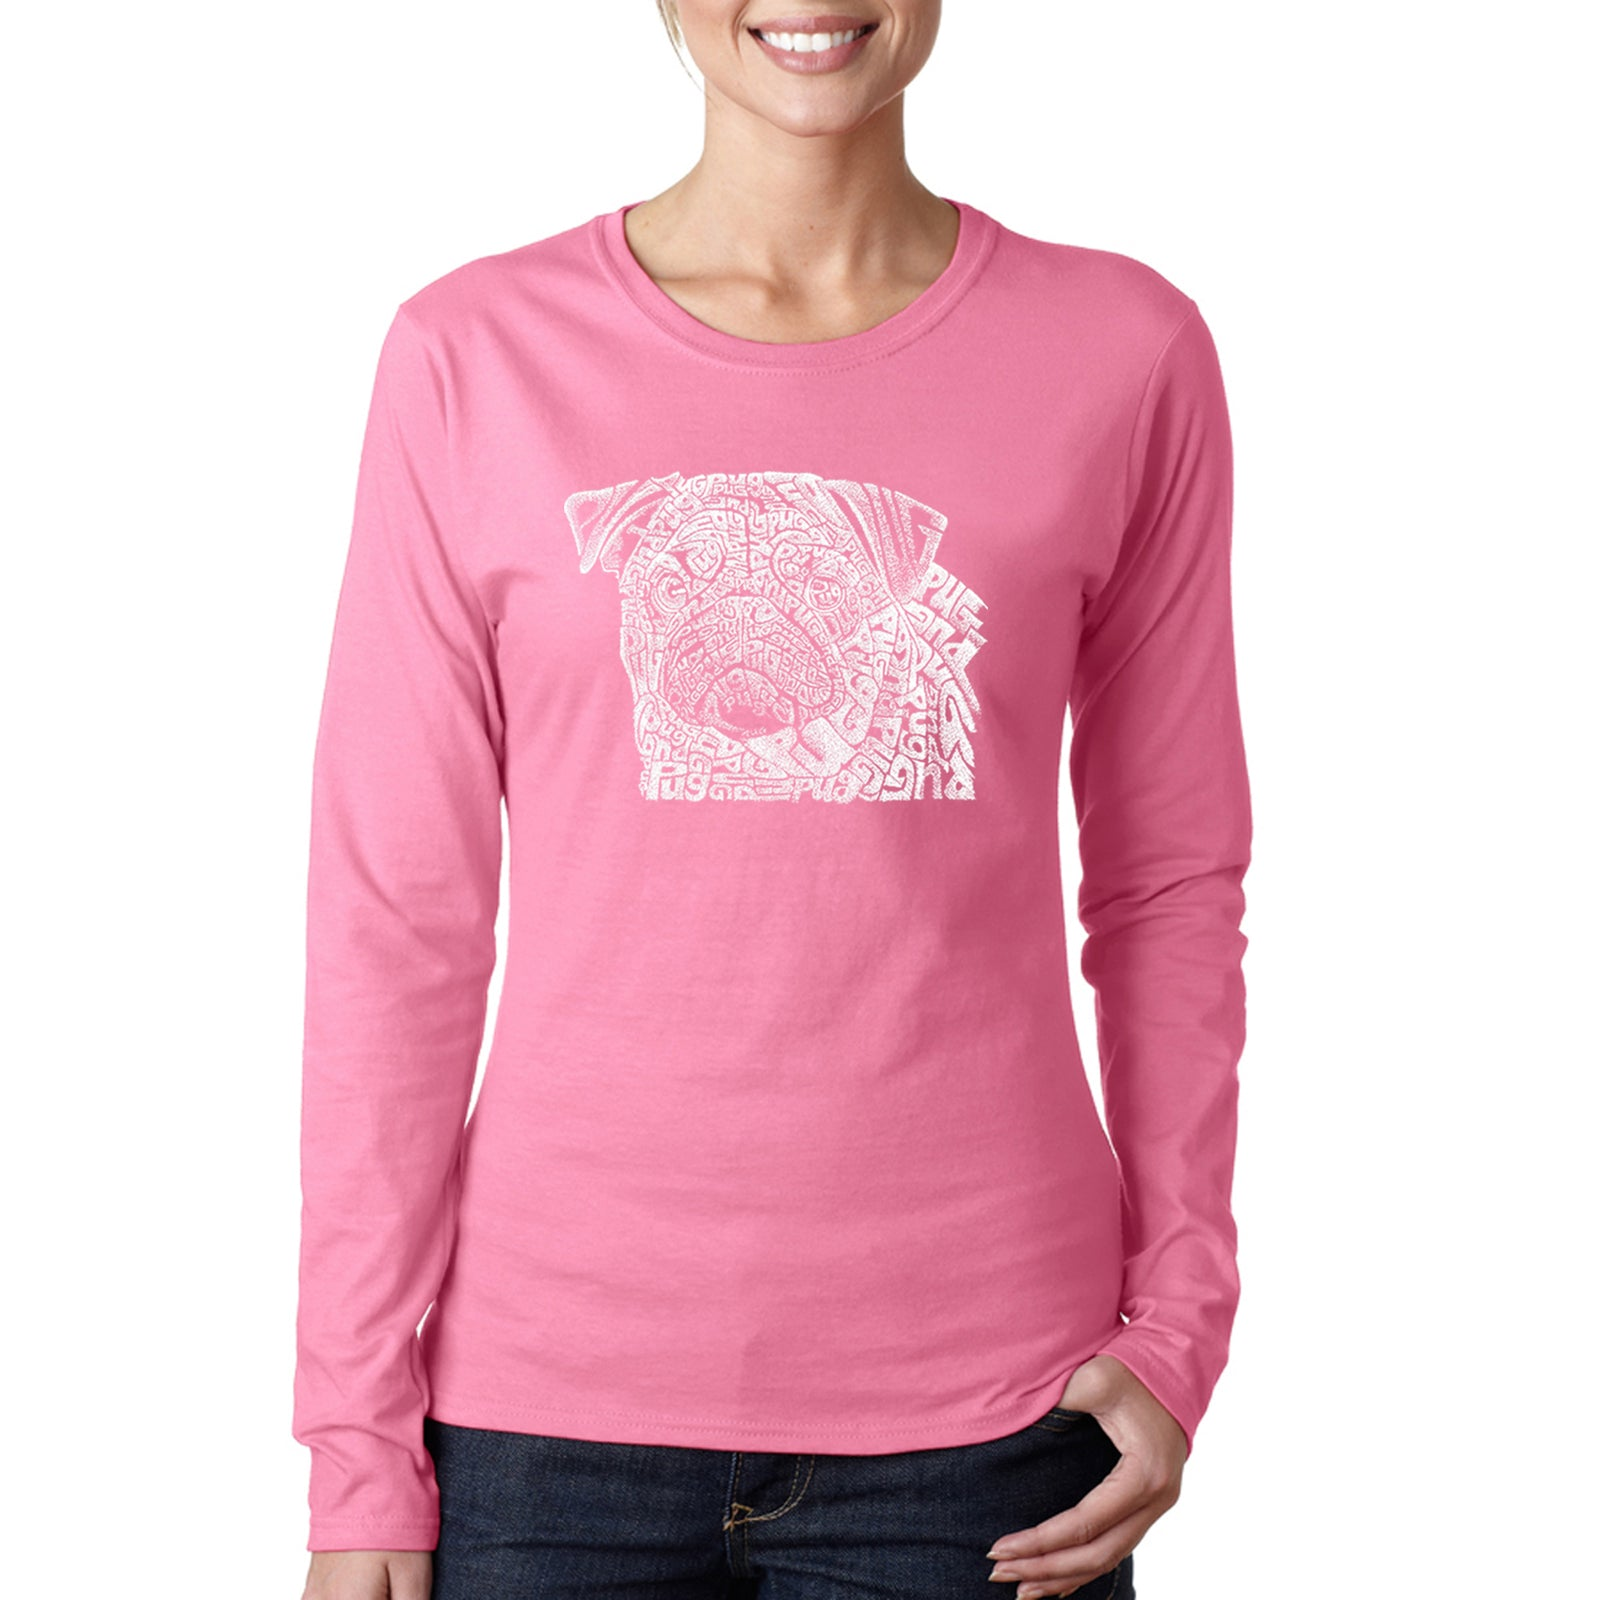 Women's Long Sleeve T-Shirt - Pug Face